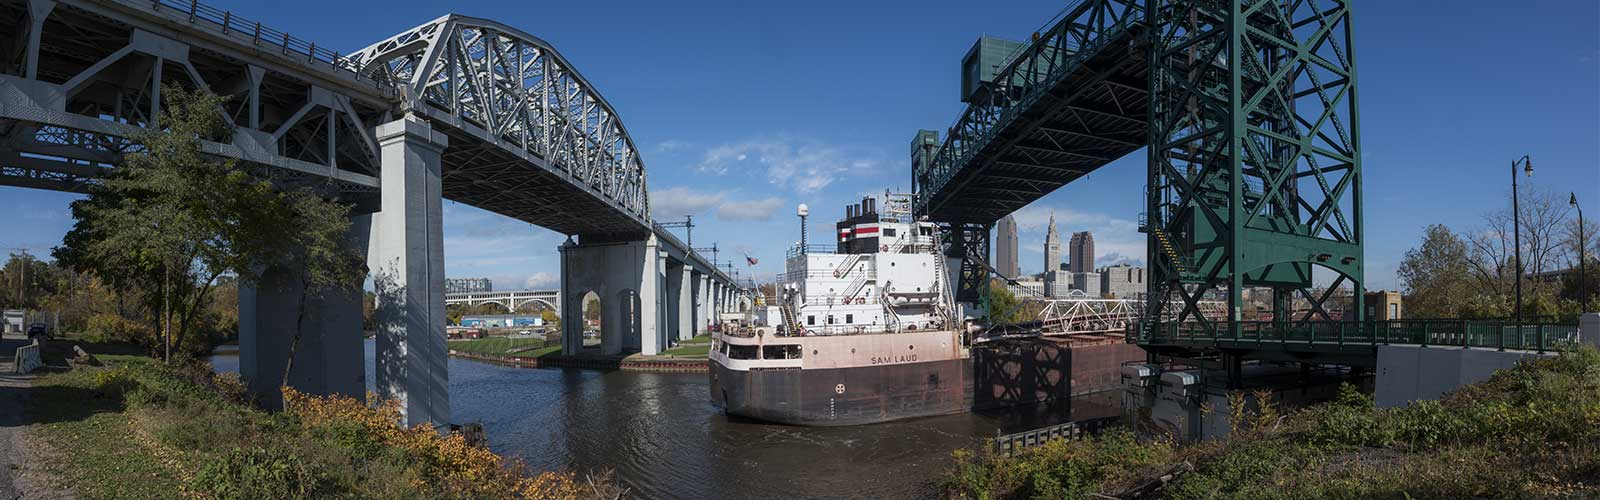 The Sam Laud freighter passing under the Columbus Rd lift bridge <span class='image-credits'>Bob Perkoski</span>